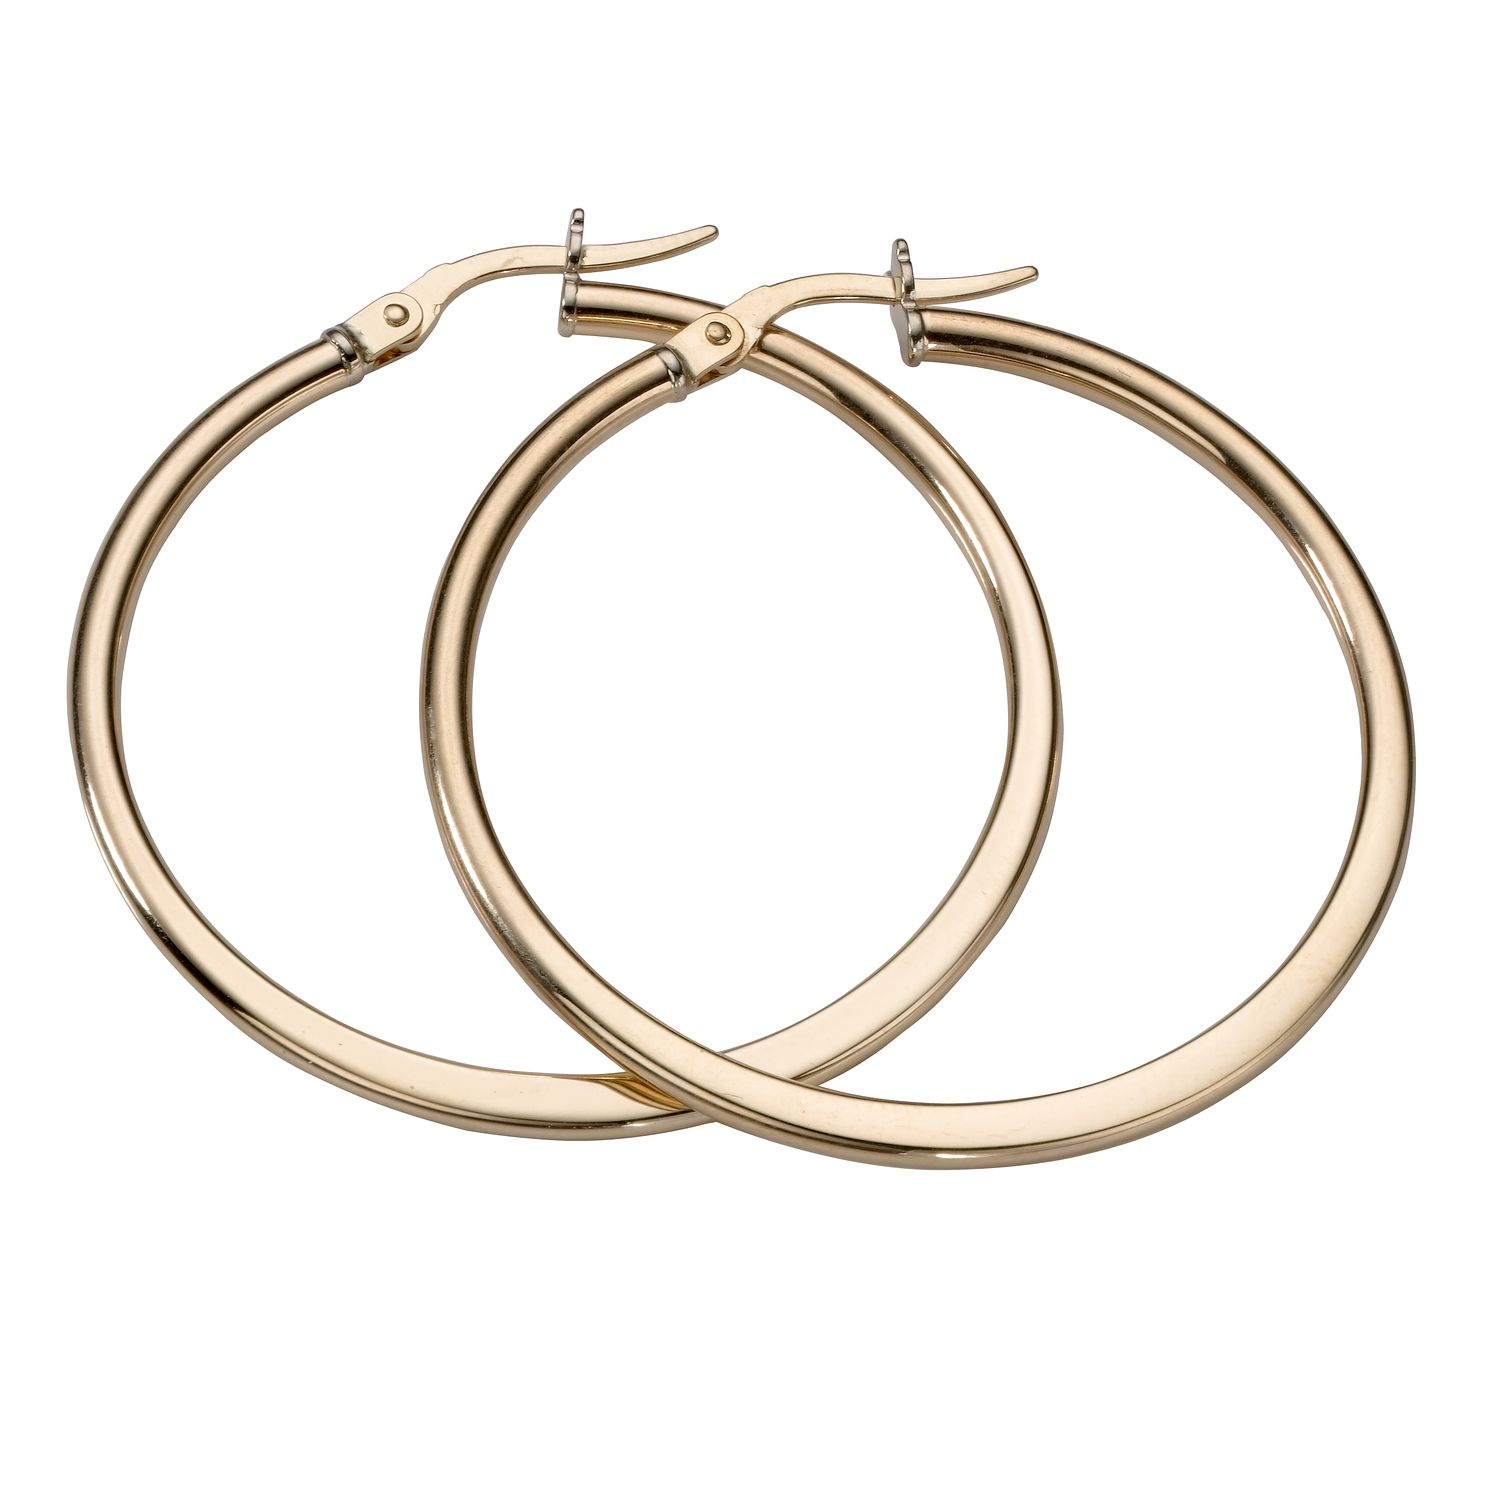 9ct Yellow Gold 35mm Hoop Earrings - Product number 5551714